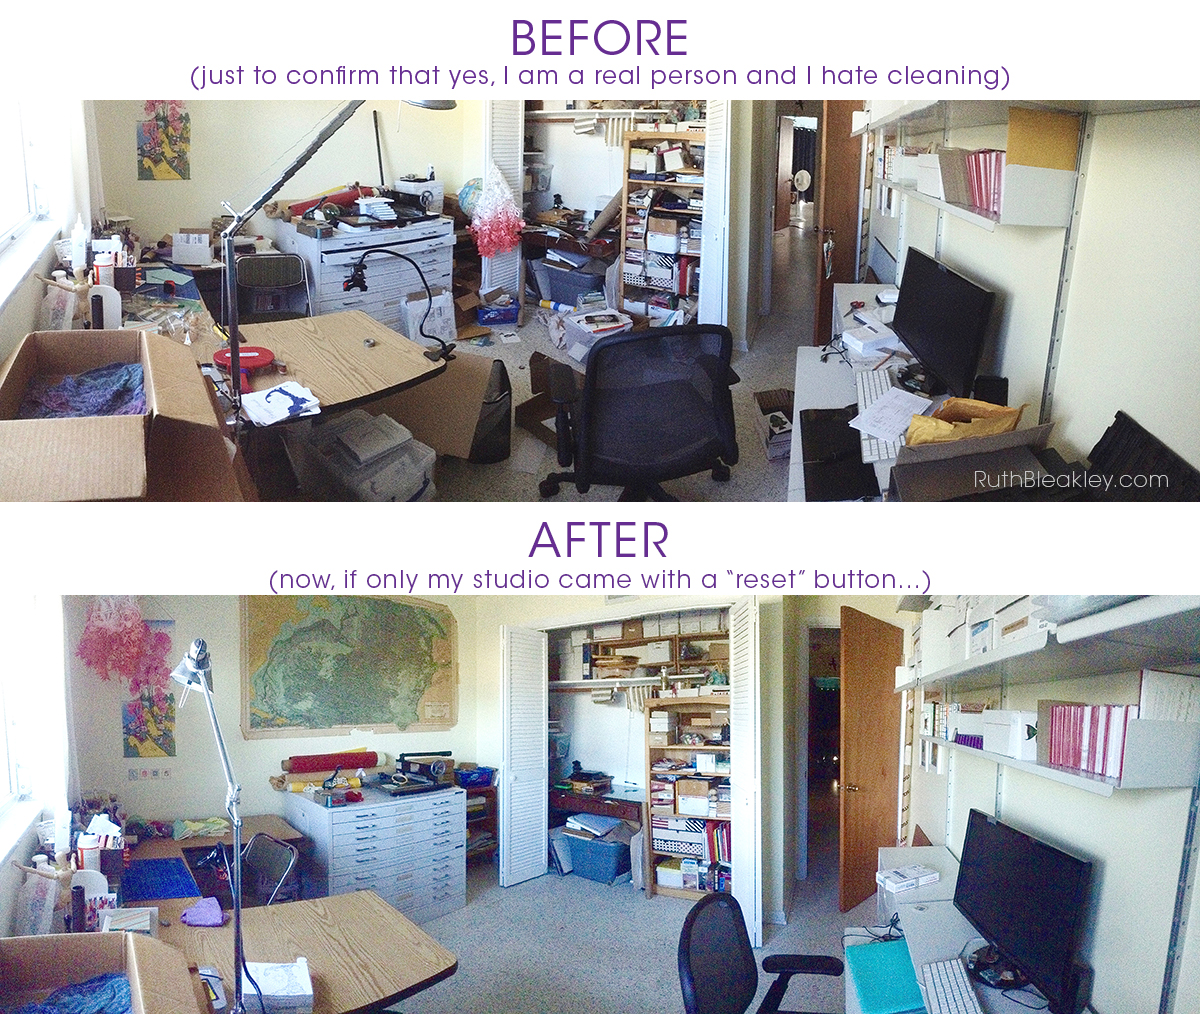 Ruth Bleakley Bookbinding Studio before and after